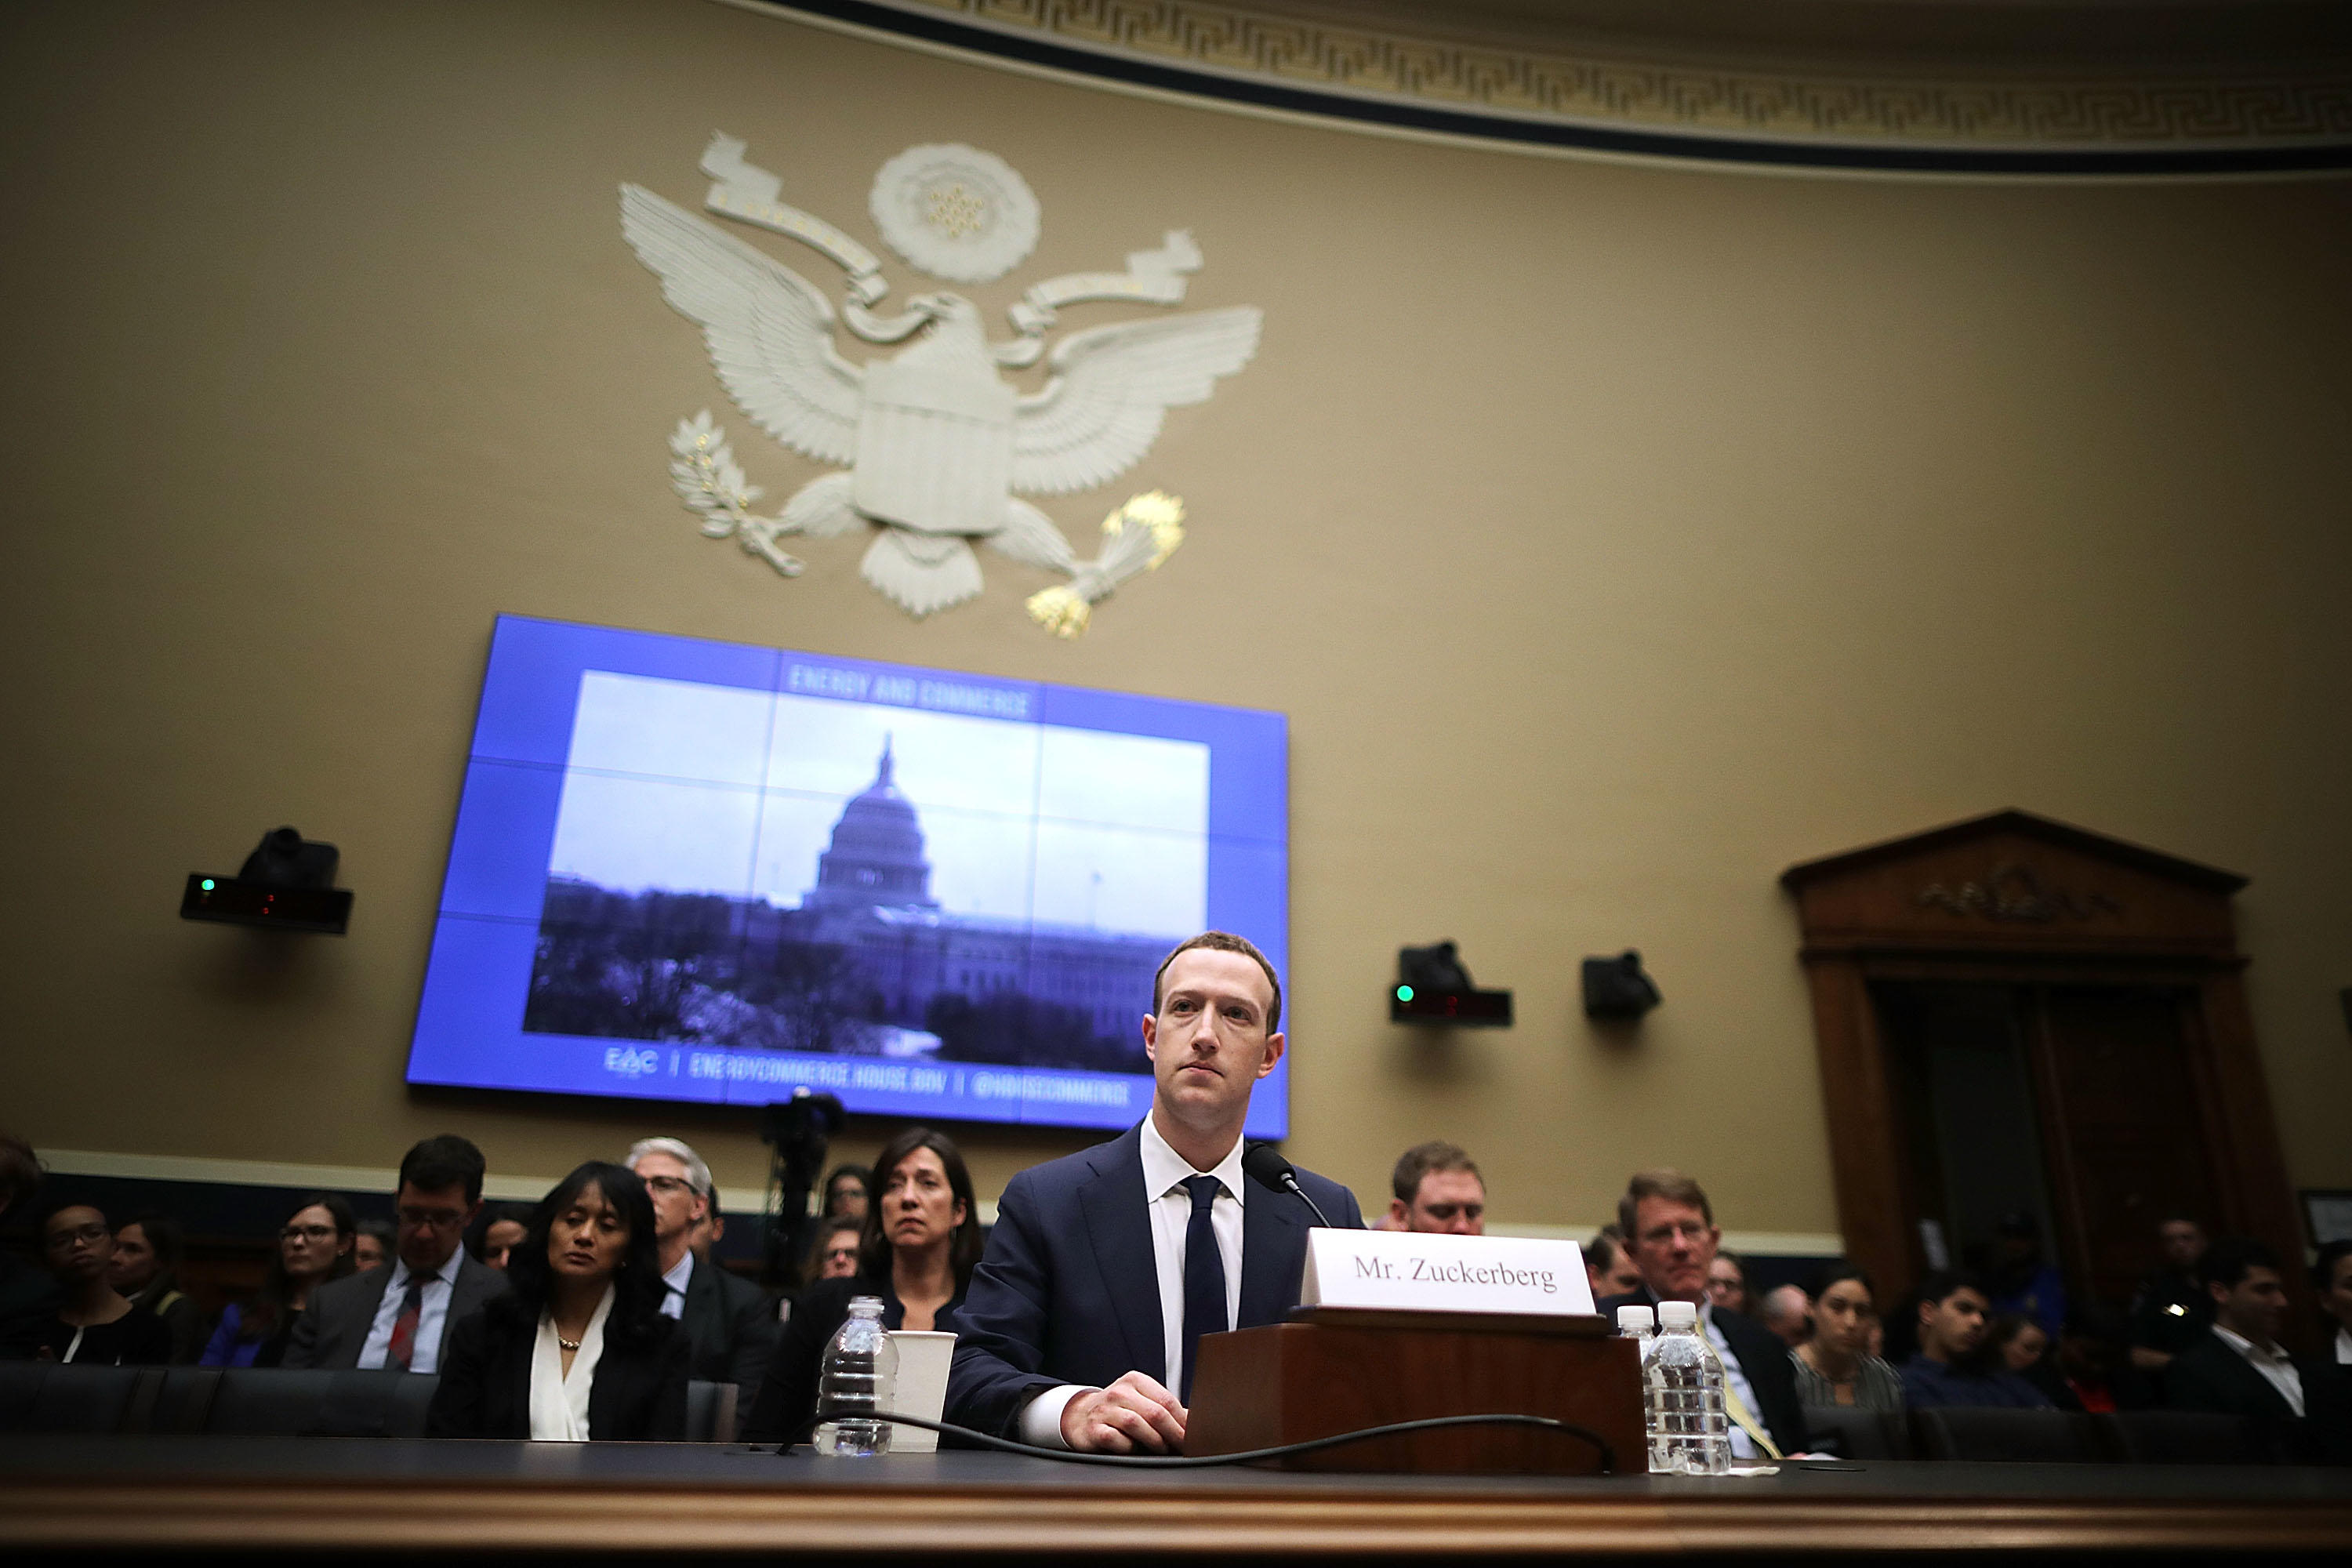 The #Zucktimony on Capitol Hill